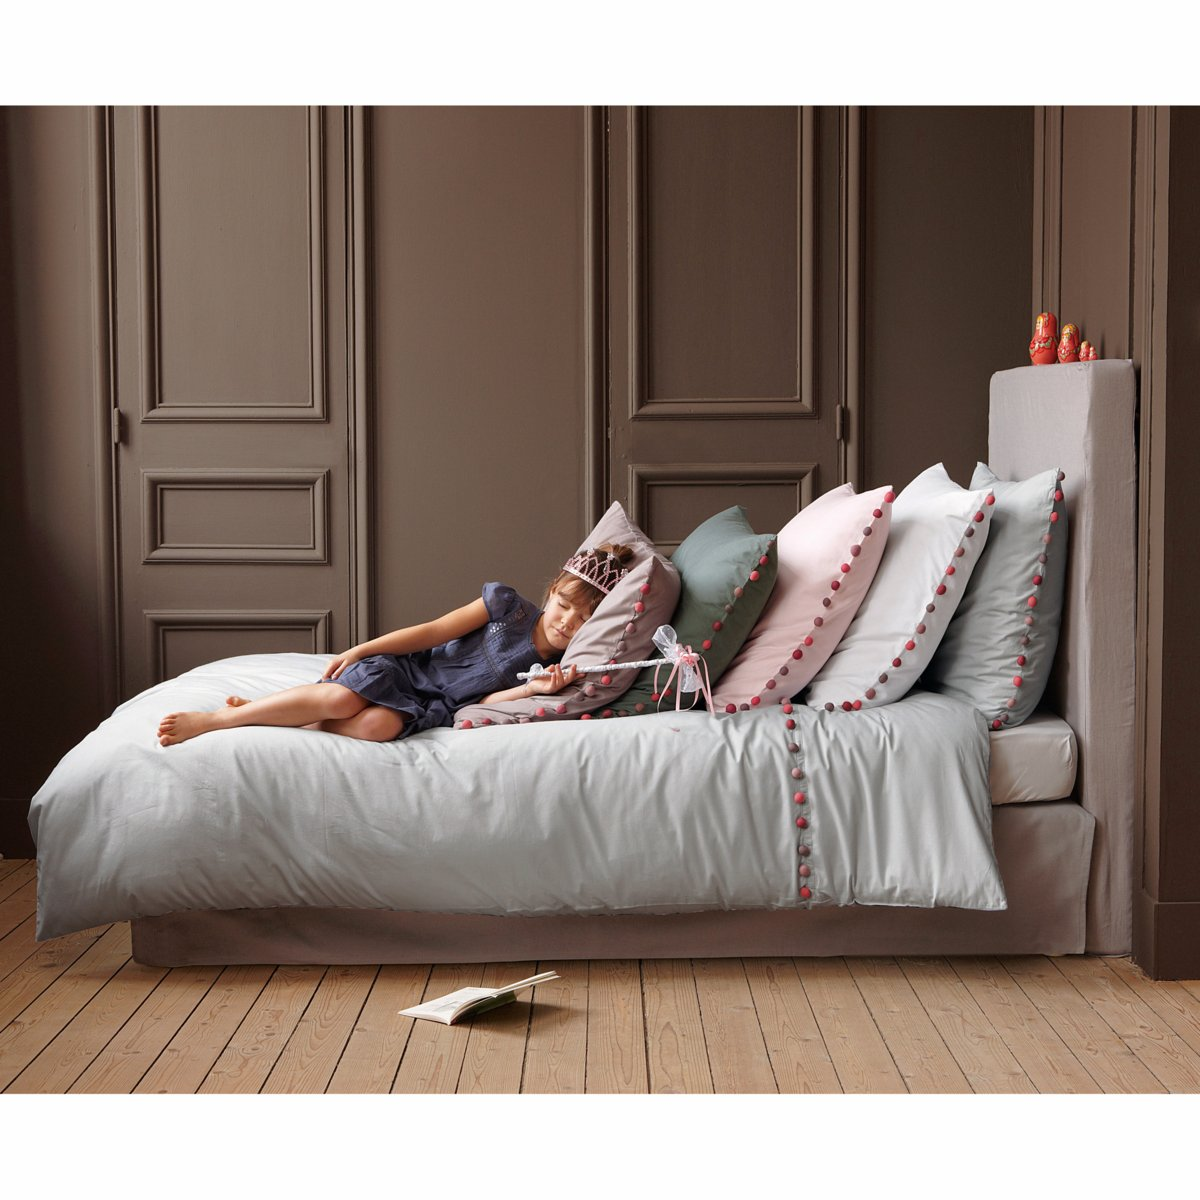 le blog d 39 une fille d cor e am pm pour un int rieur cosy. Black Bedroom Furniture Sets. Home Design Ideas